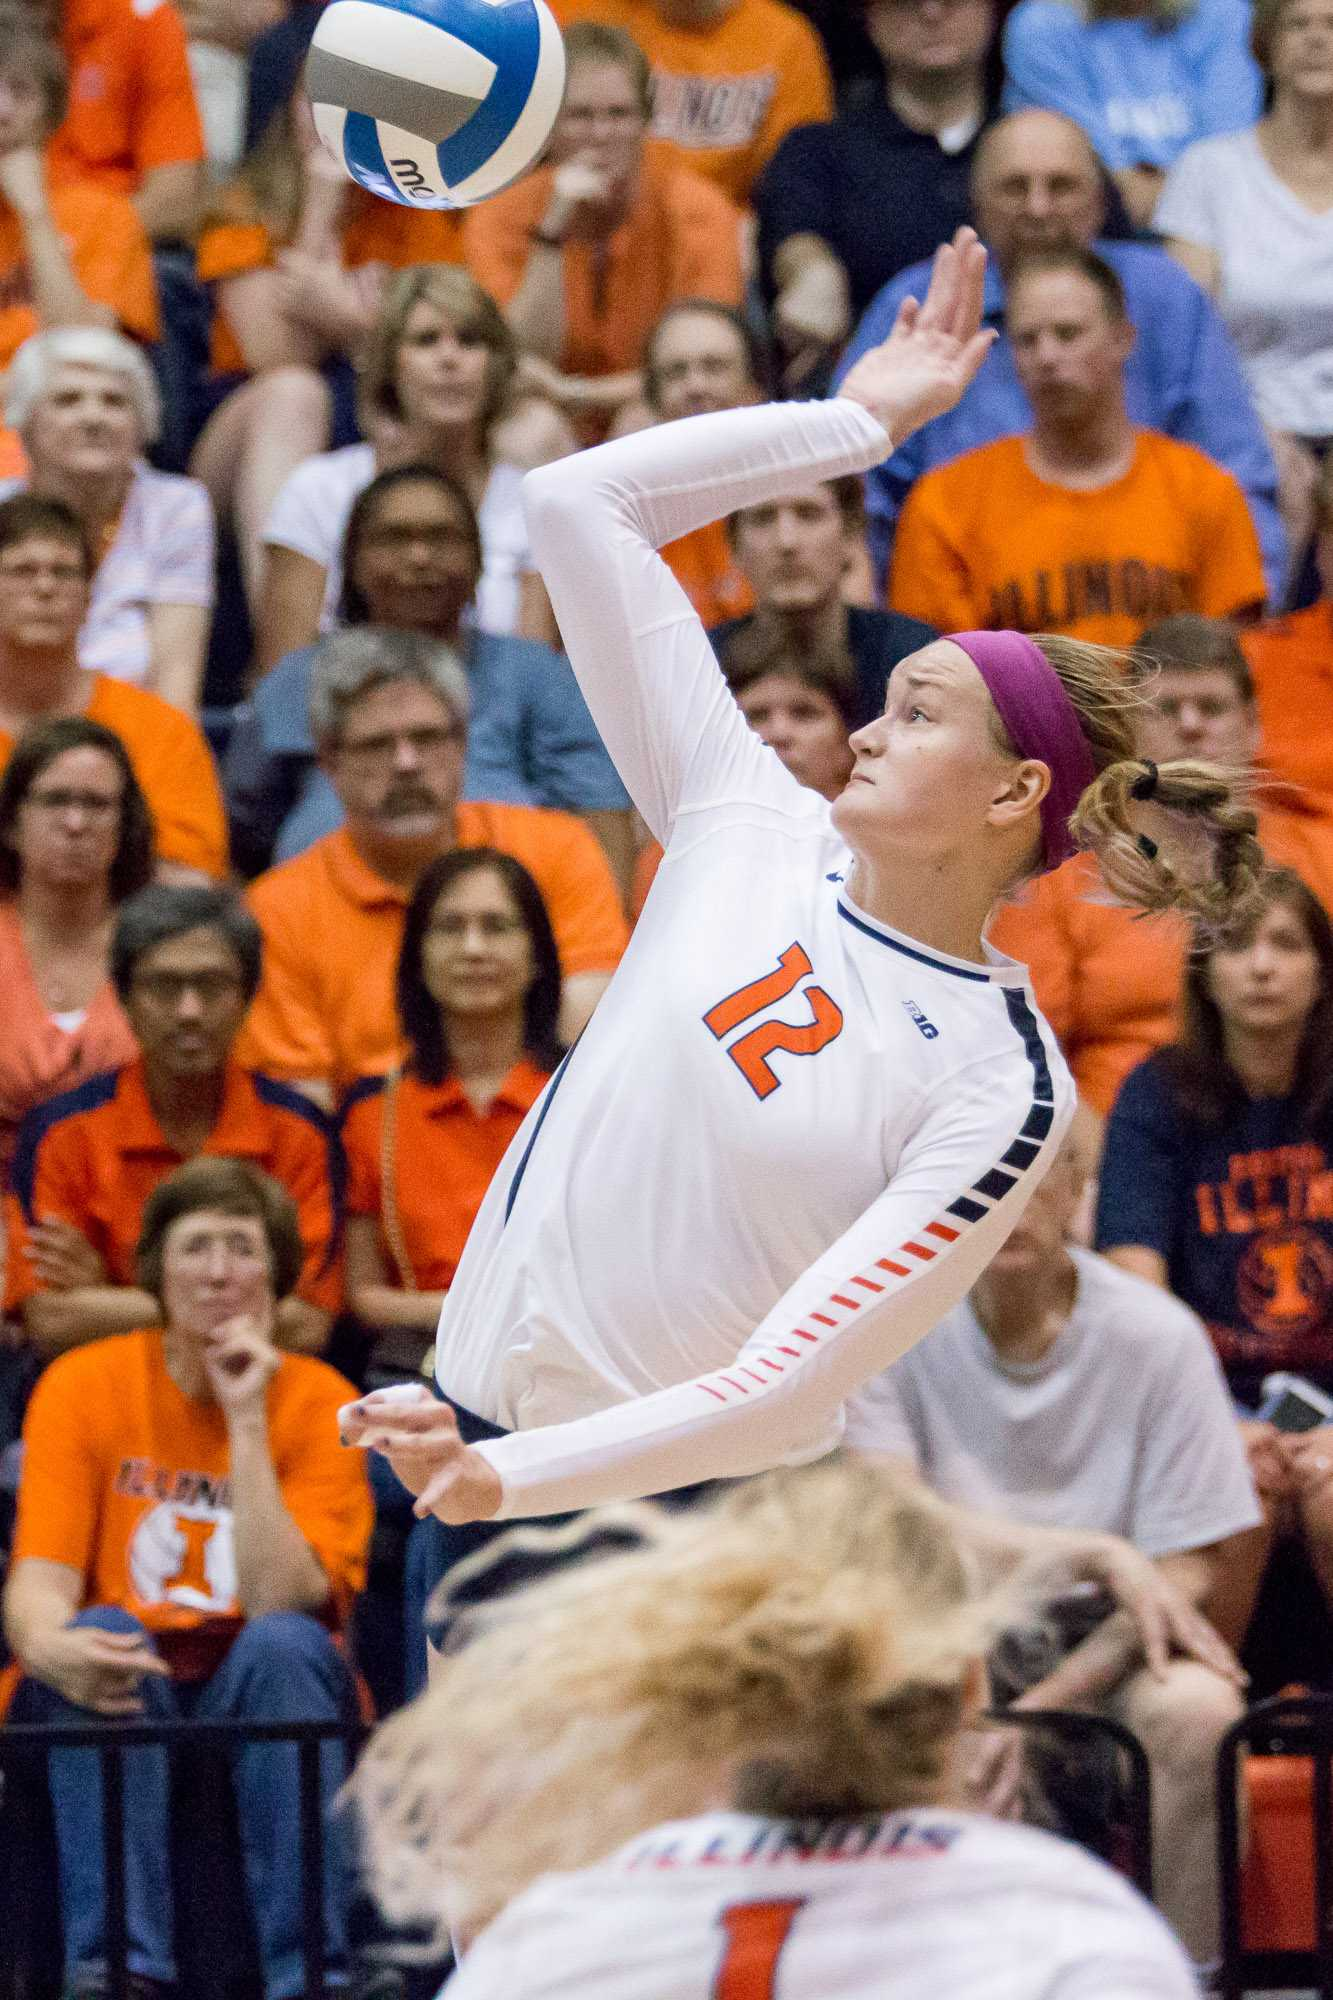 Illinois' Katie Stadick gets ready to hit the ball over the net during the match against Arkansas at Huff Hall on Friday, August 26. The Illini won 3-0.